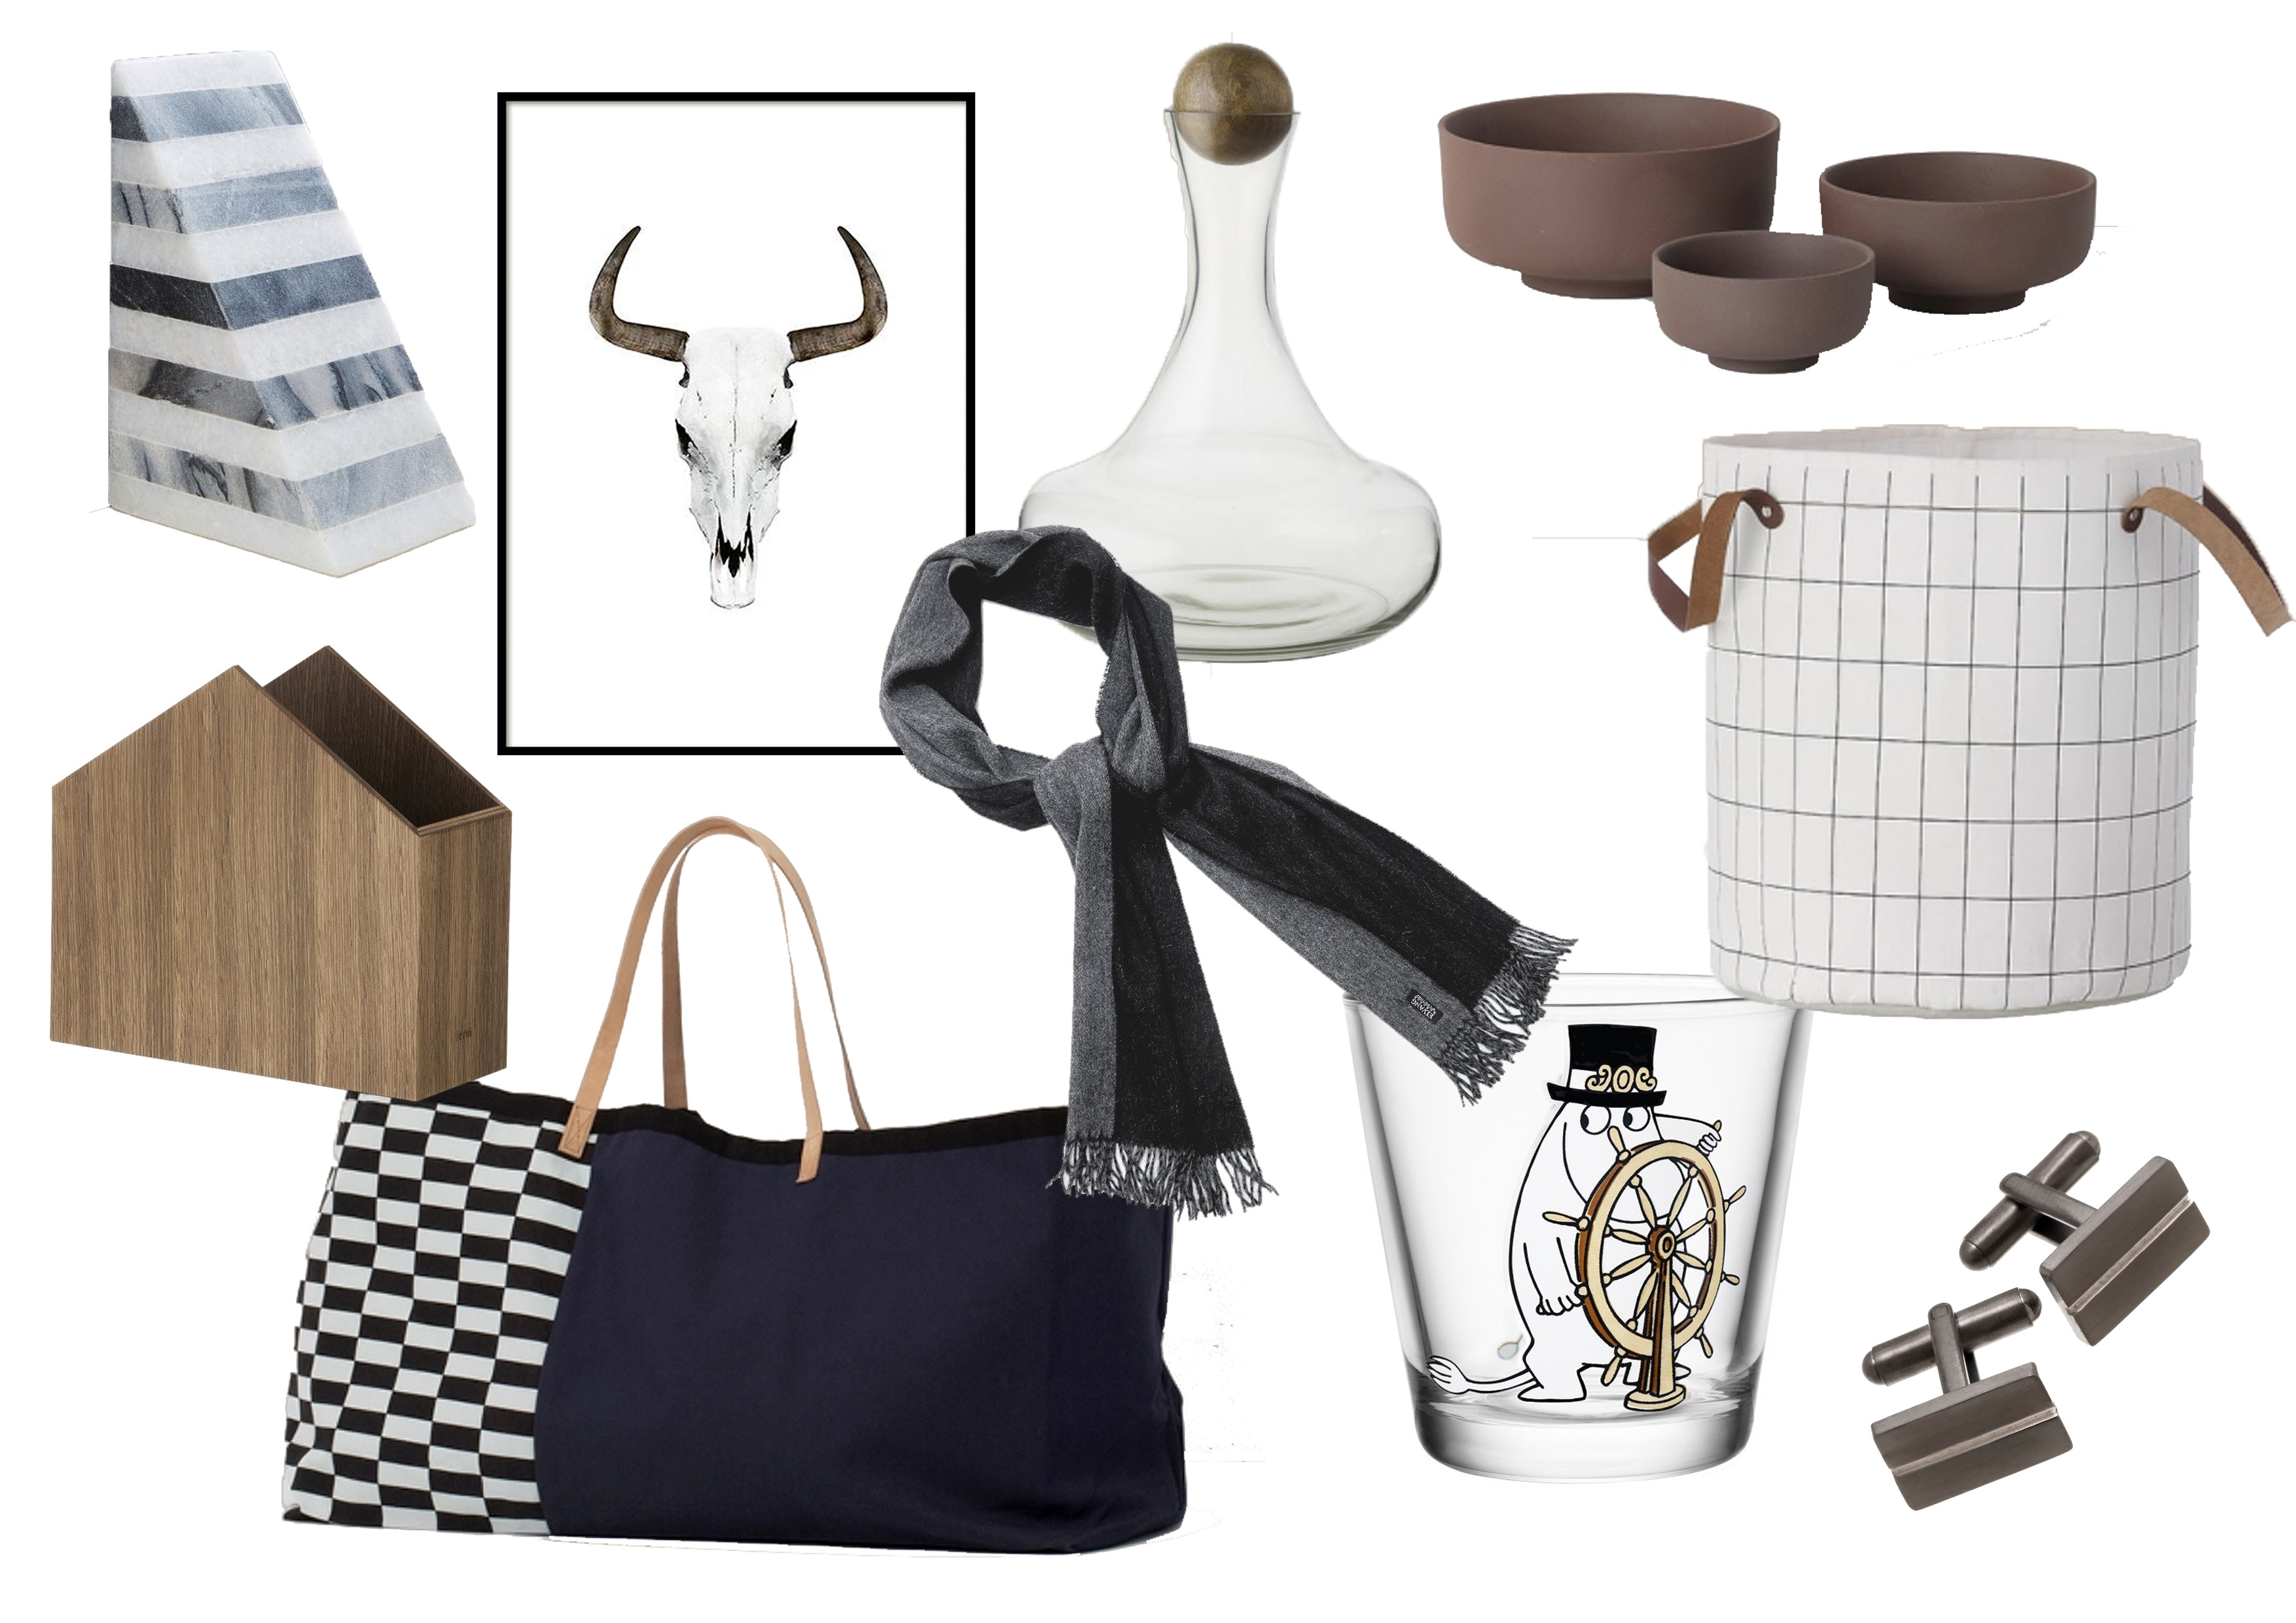 A Christmas gift list for Scandinavian Style lovers. Don't panic if you left the Xmas gift to the last minute - here's a gift list that can save the day.v